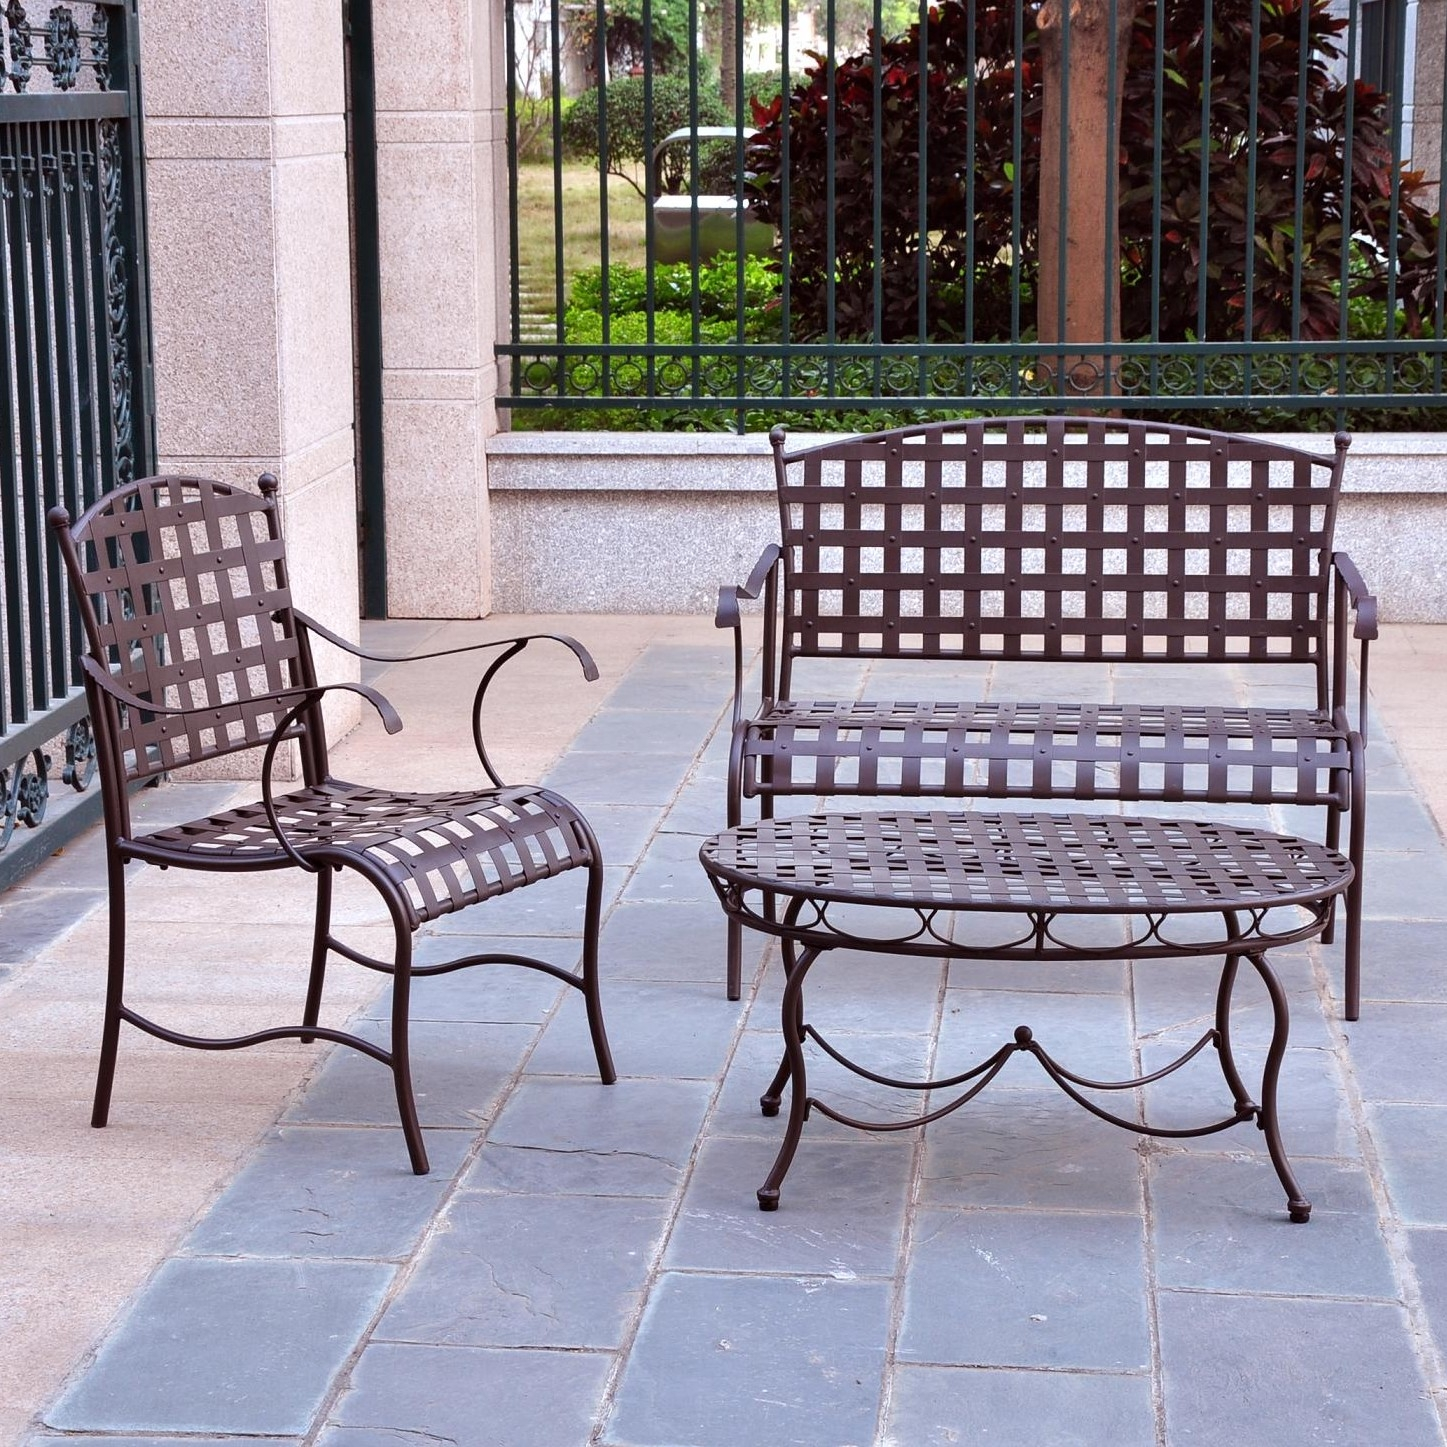 Creativeworks home decor patio furniture sets for Iron furniture